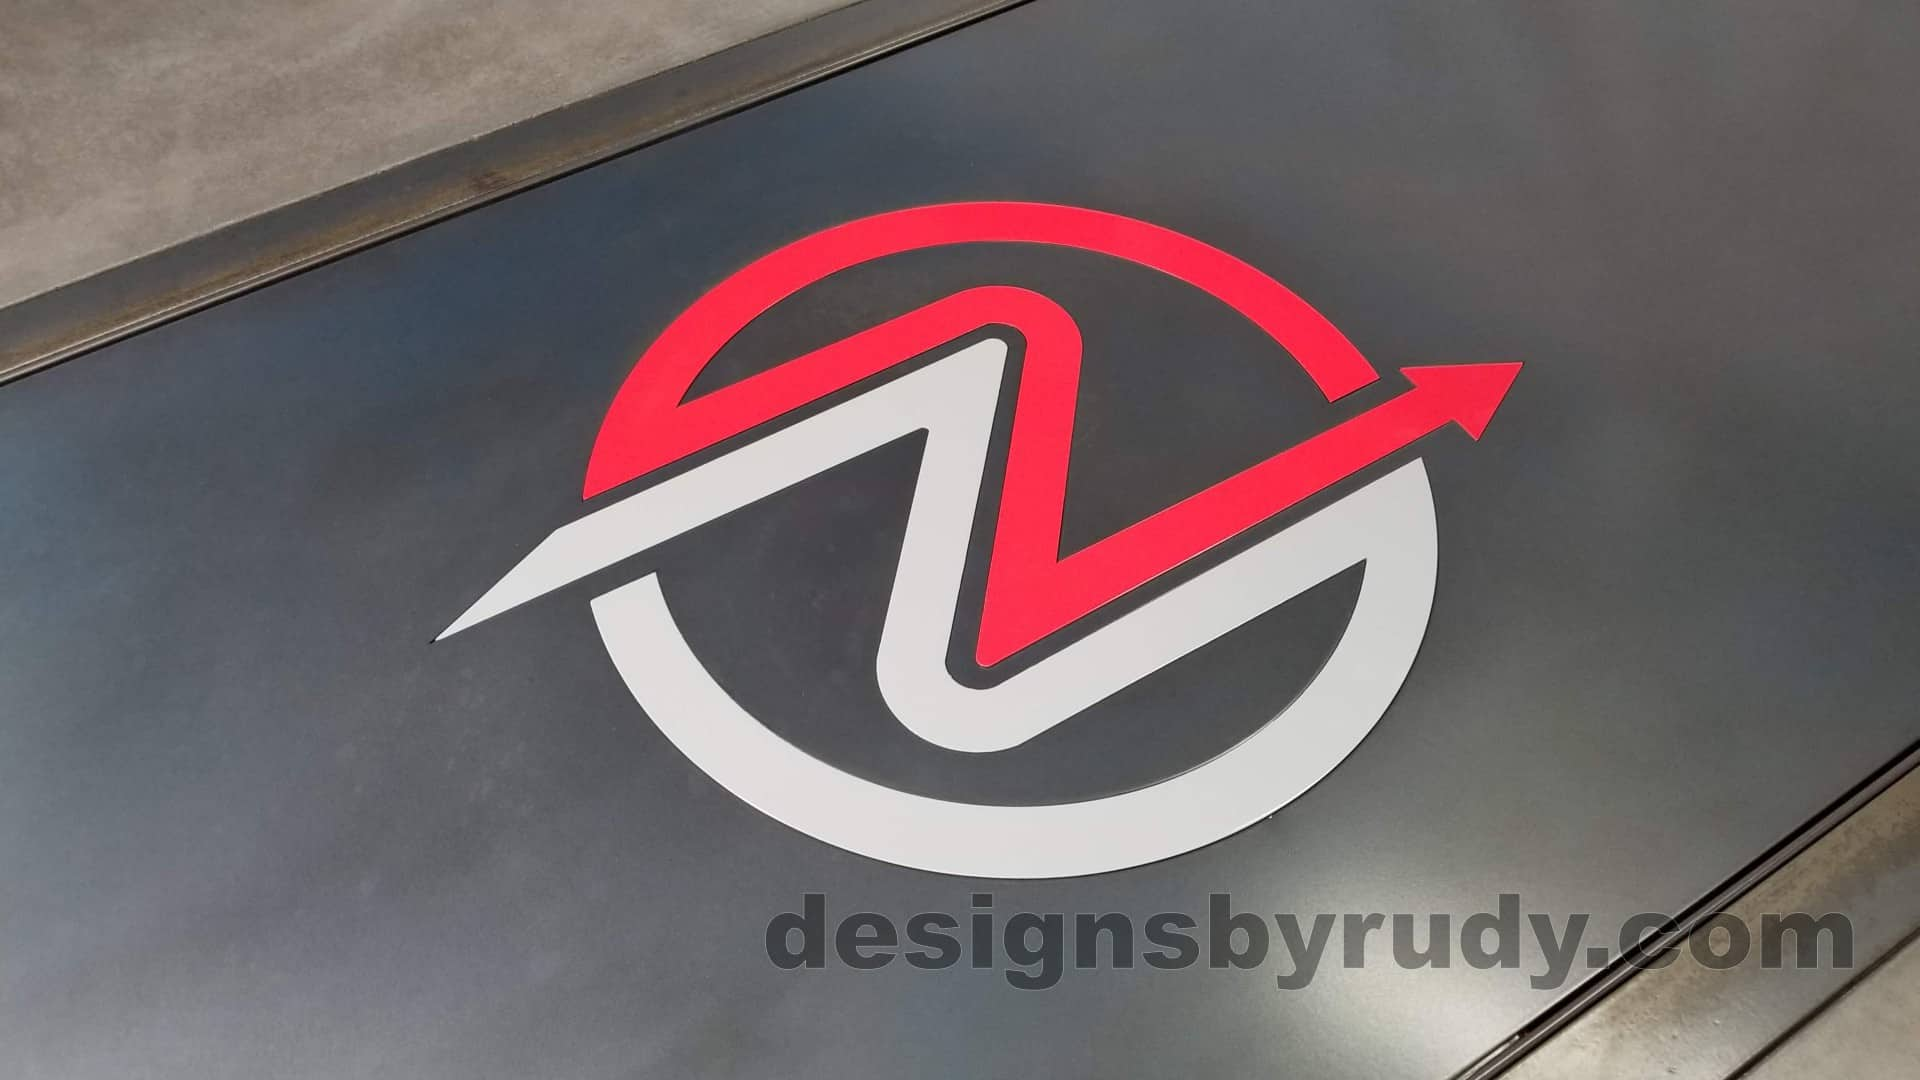 13 Steel and concrete conference table, design and fabrication by Designs by Rudy, logo view